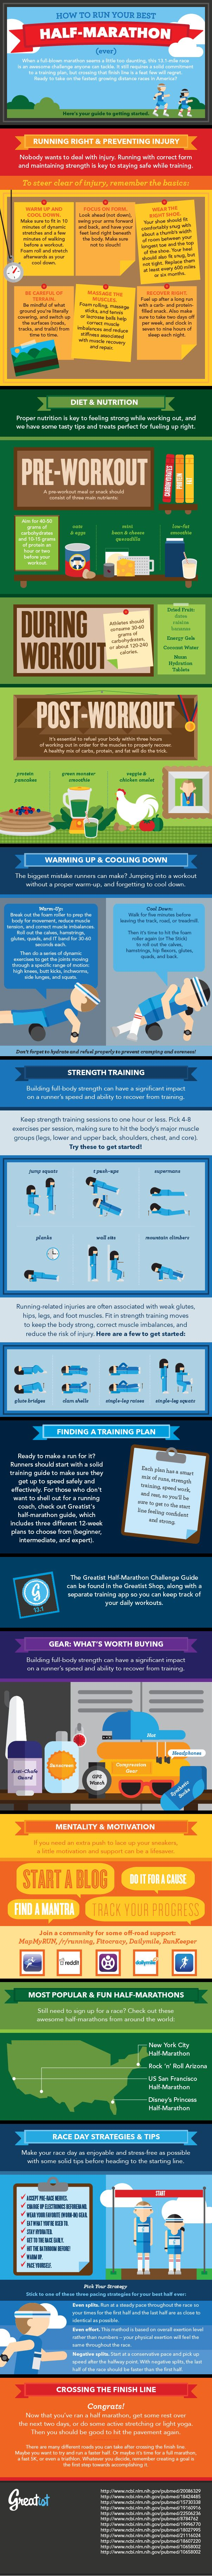 79 Best Fitness Images On Pinterest Workouts Deporte And Exercise Body Gym Pump Warna Half Marathon General Workout Training Tips